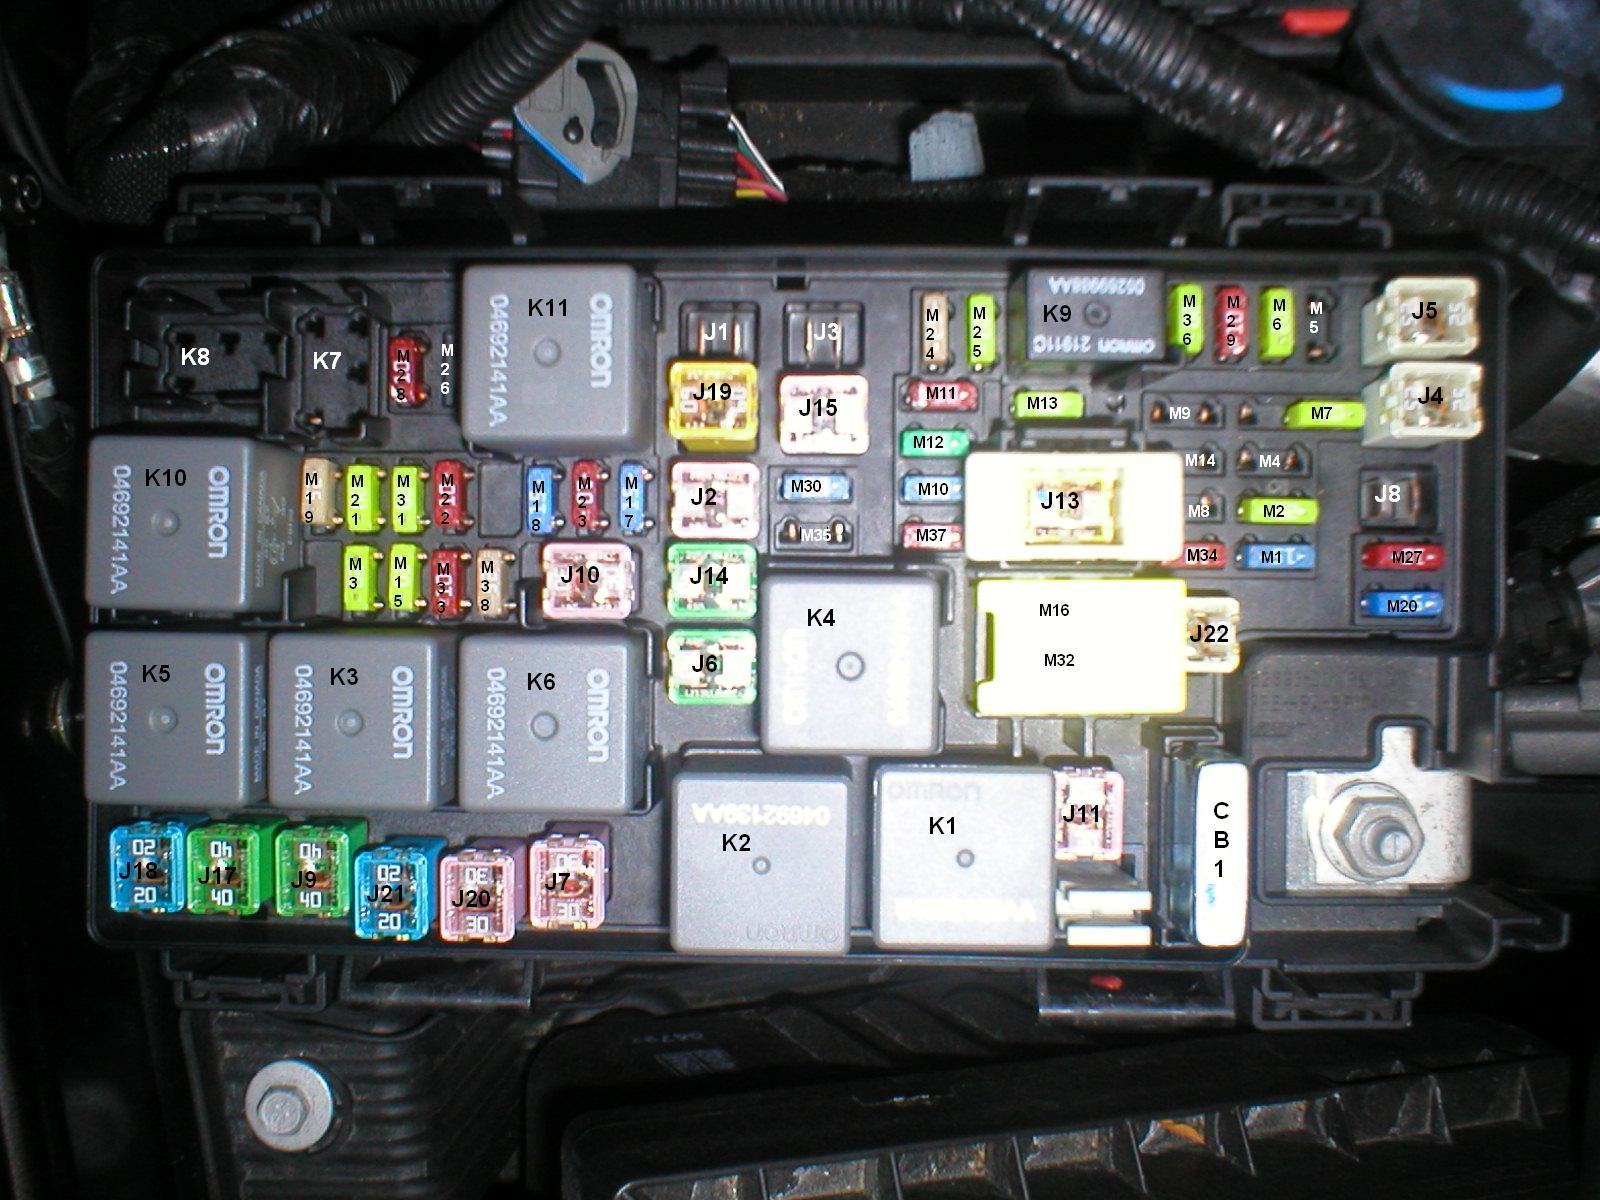 hight resolution of 2011 wrangler fuse box blog wiring diagram 95 wrangler fuse box wrangler fuse box